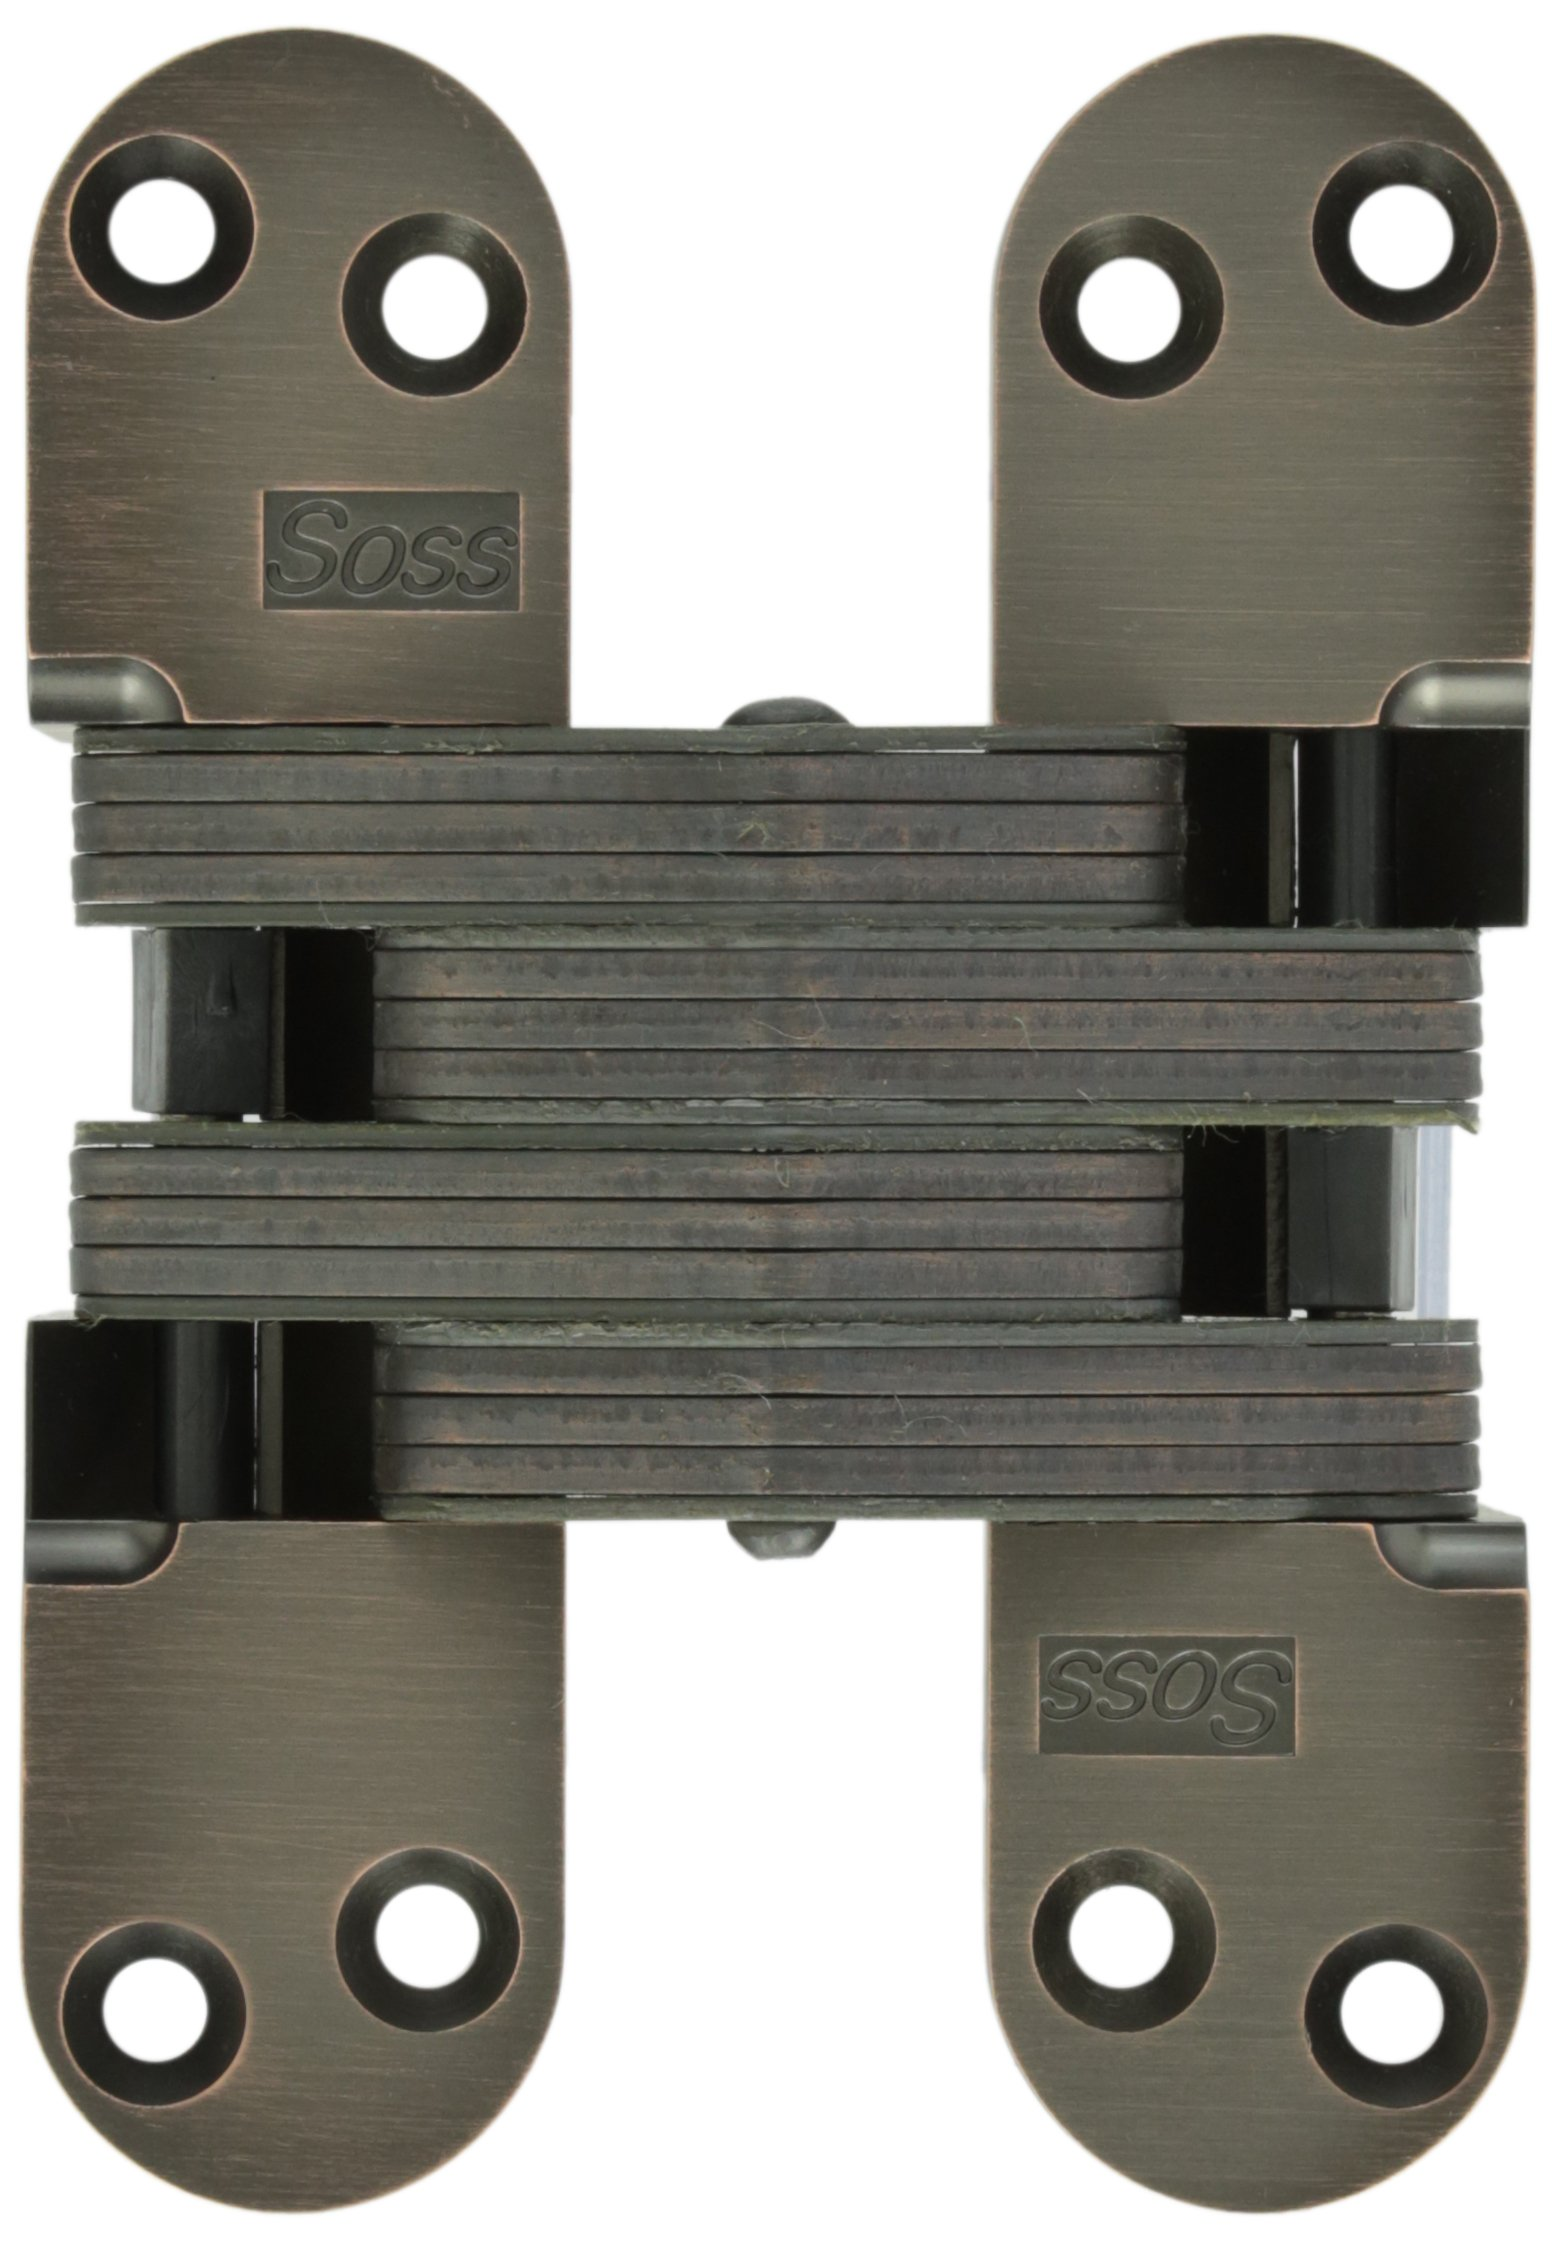 SOSS 220 Zinc Invisible Hinge with Holes for Wood or Metal Applications, Oil Rubbed Bronze Exterior Finish